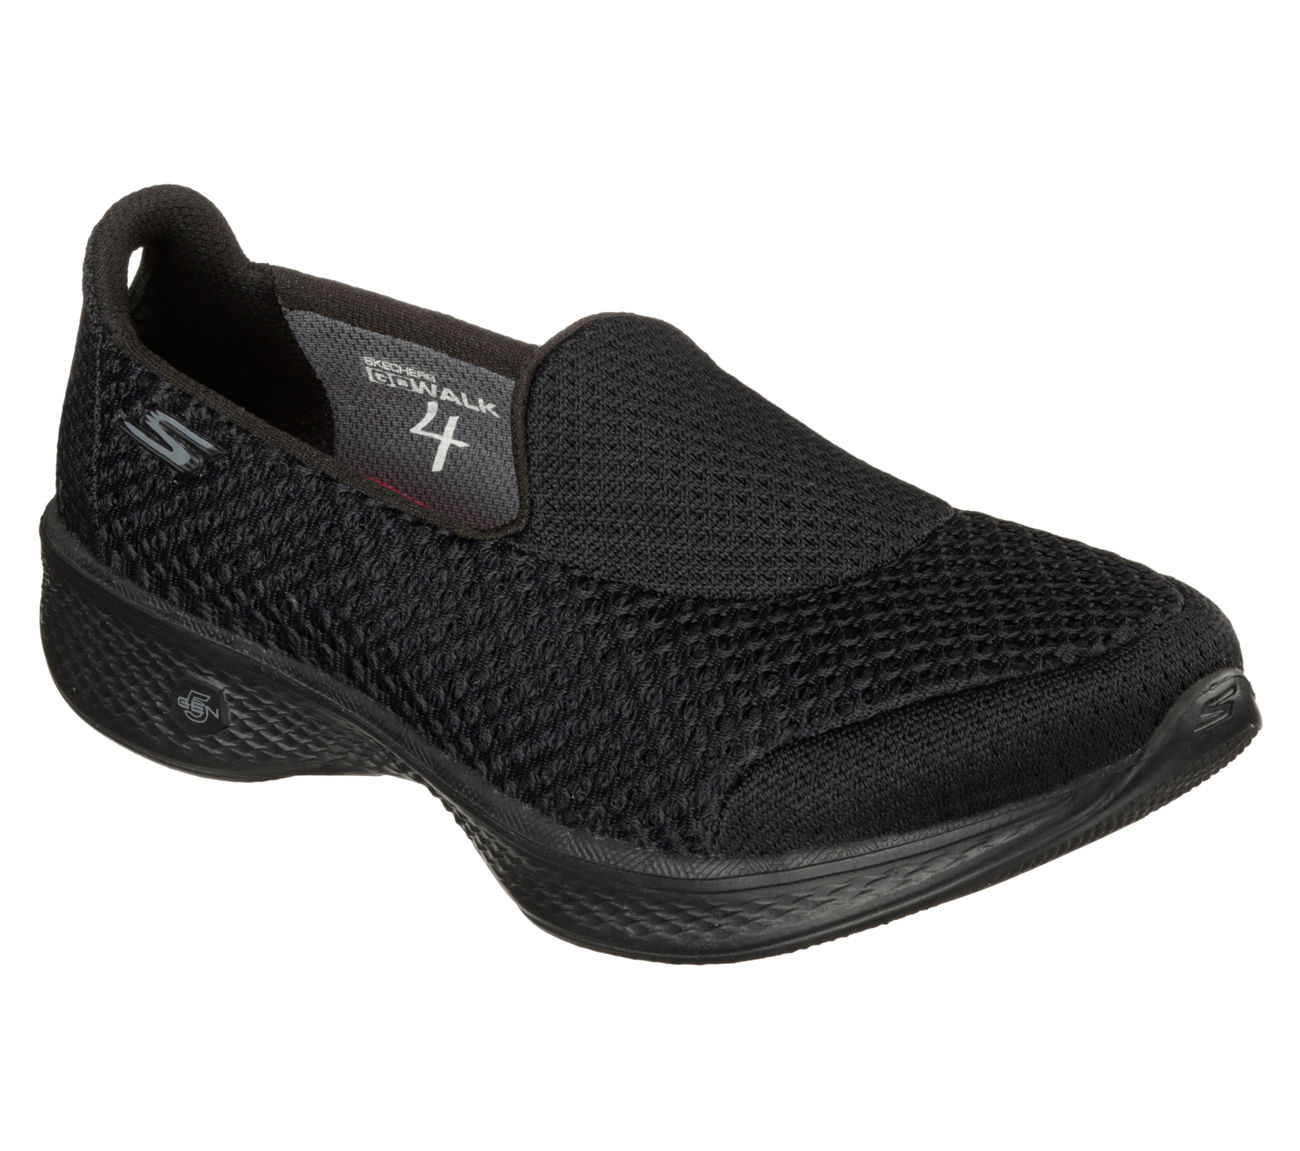 Where To Buy Skecher Water Shoes